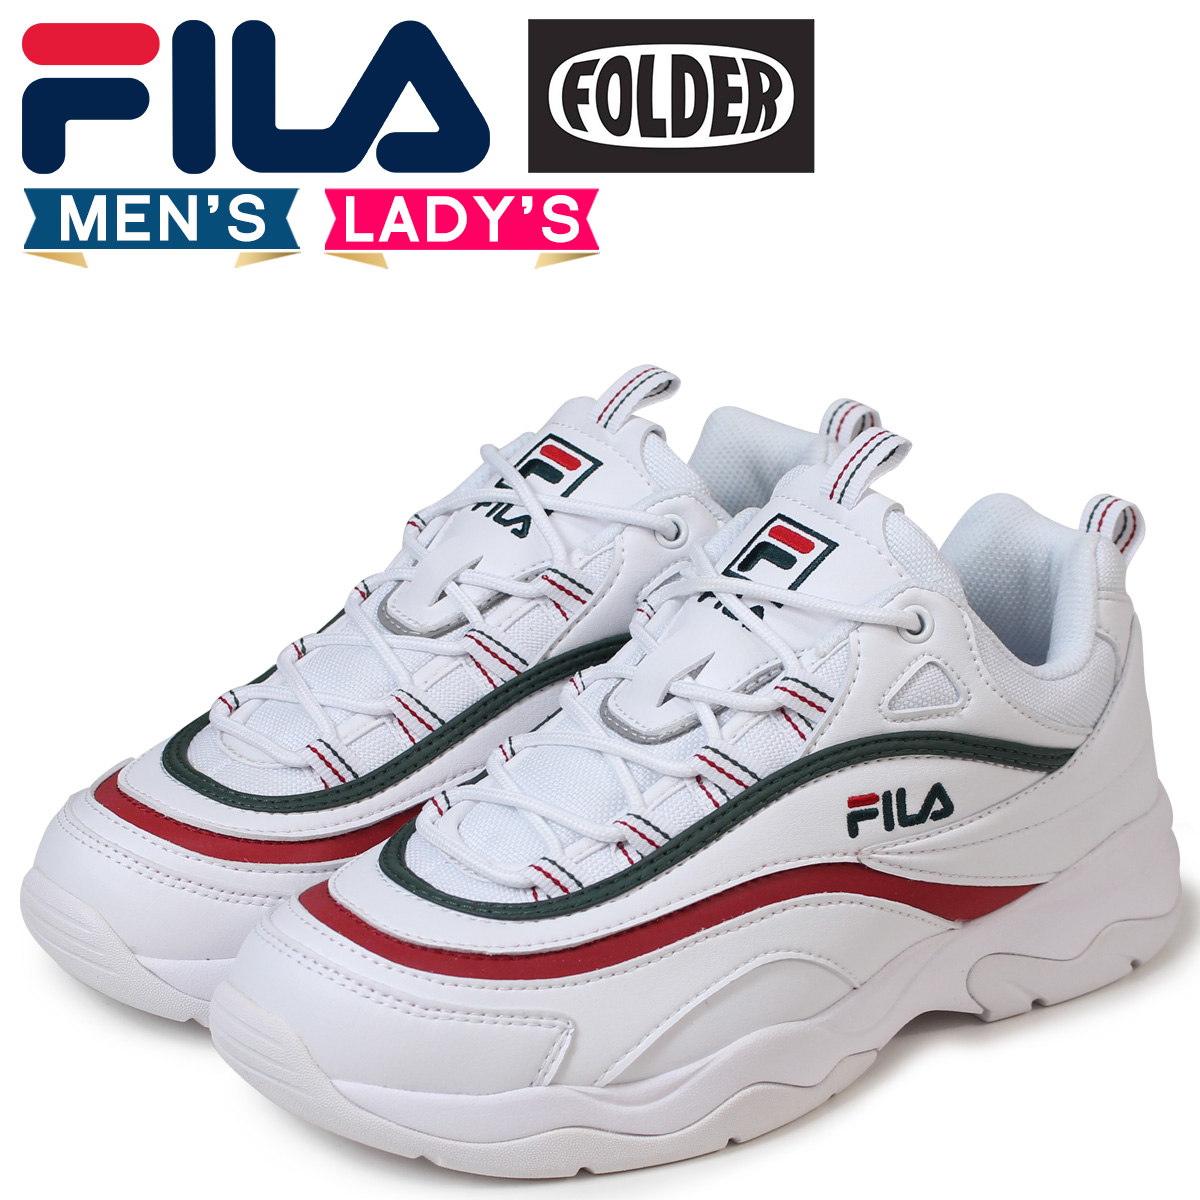 Fila FILA Fila lei sneakers men gap Dis folder FOLDER FILARAY SMU  collaboration white white FLFL8A1U10 FS1SIA1166X WGN